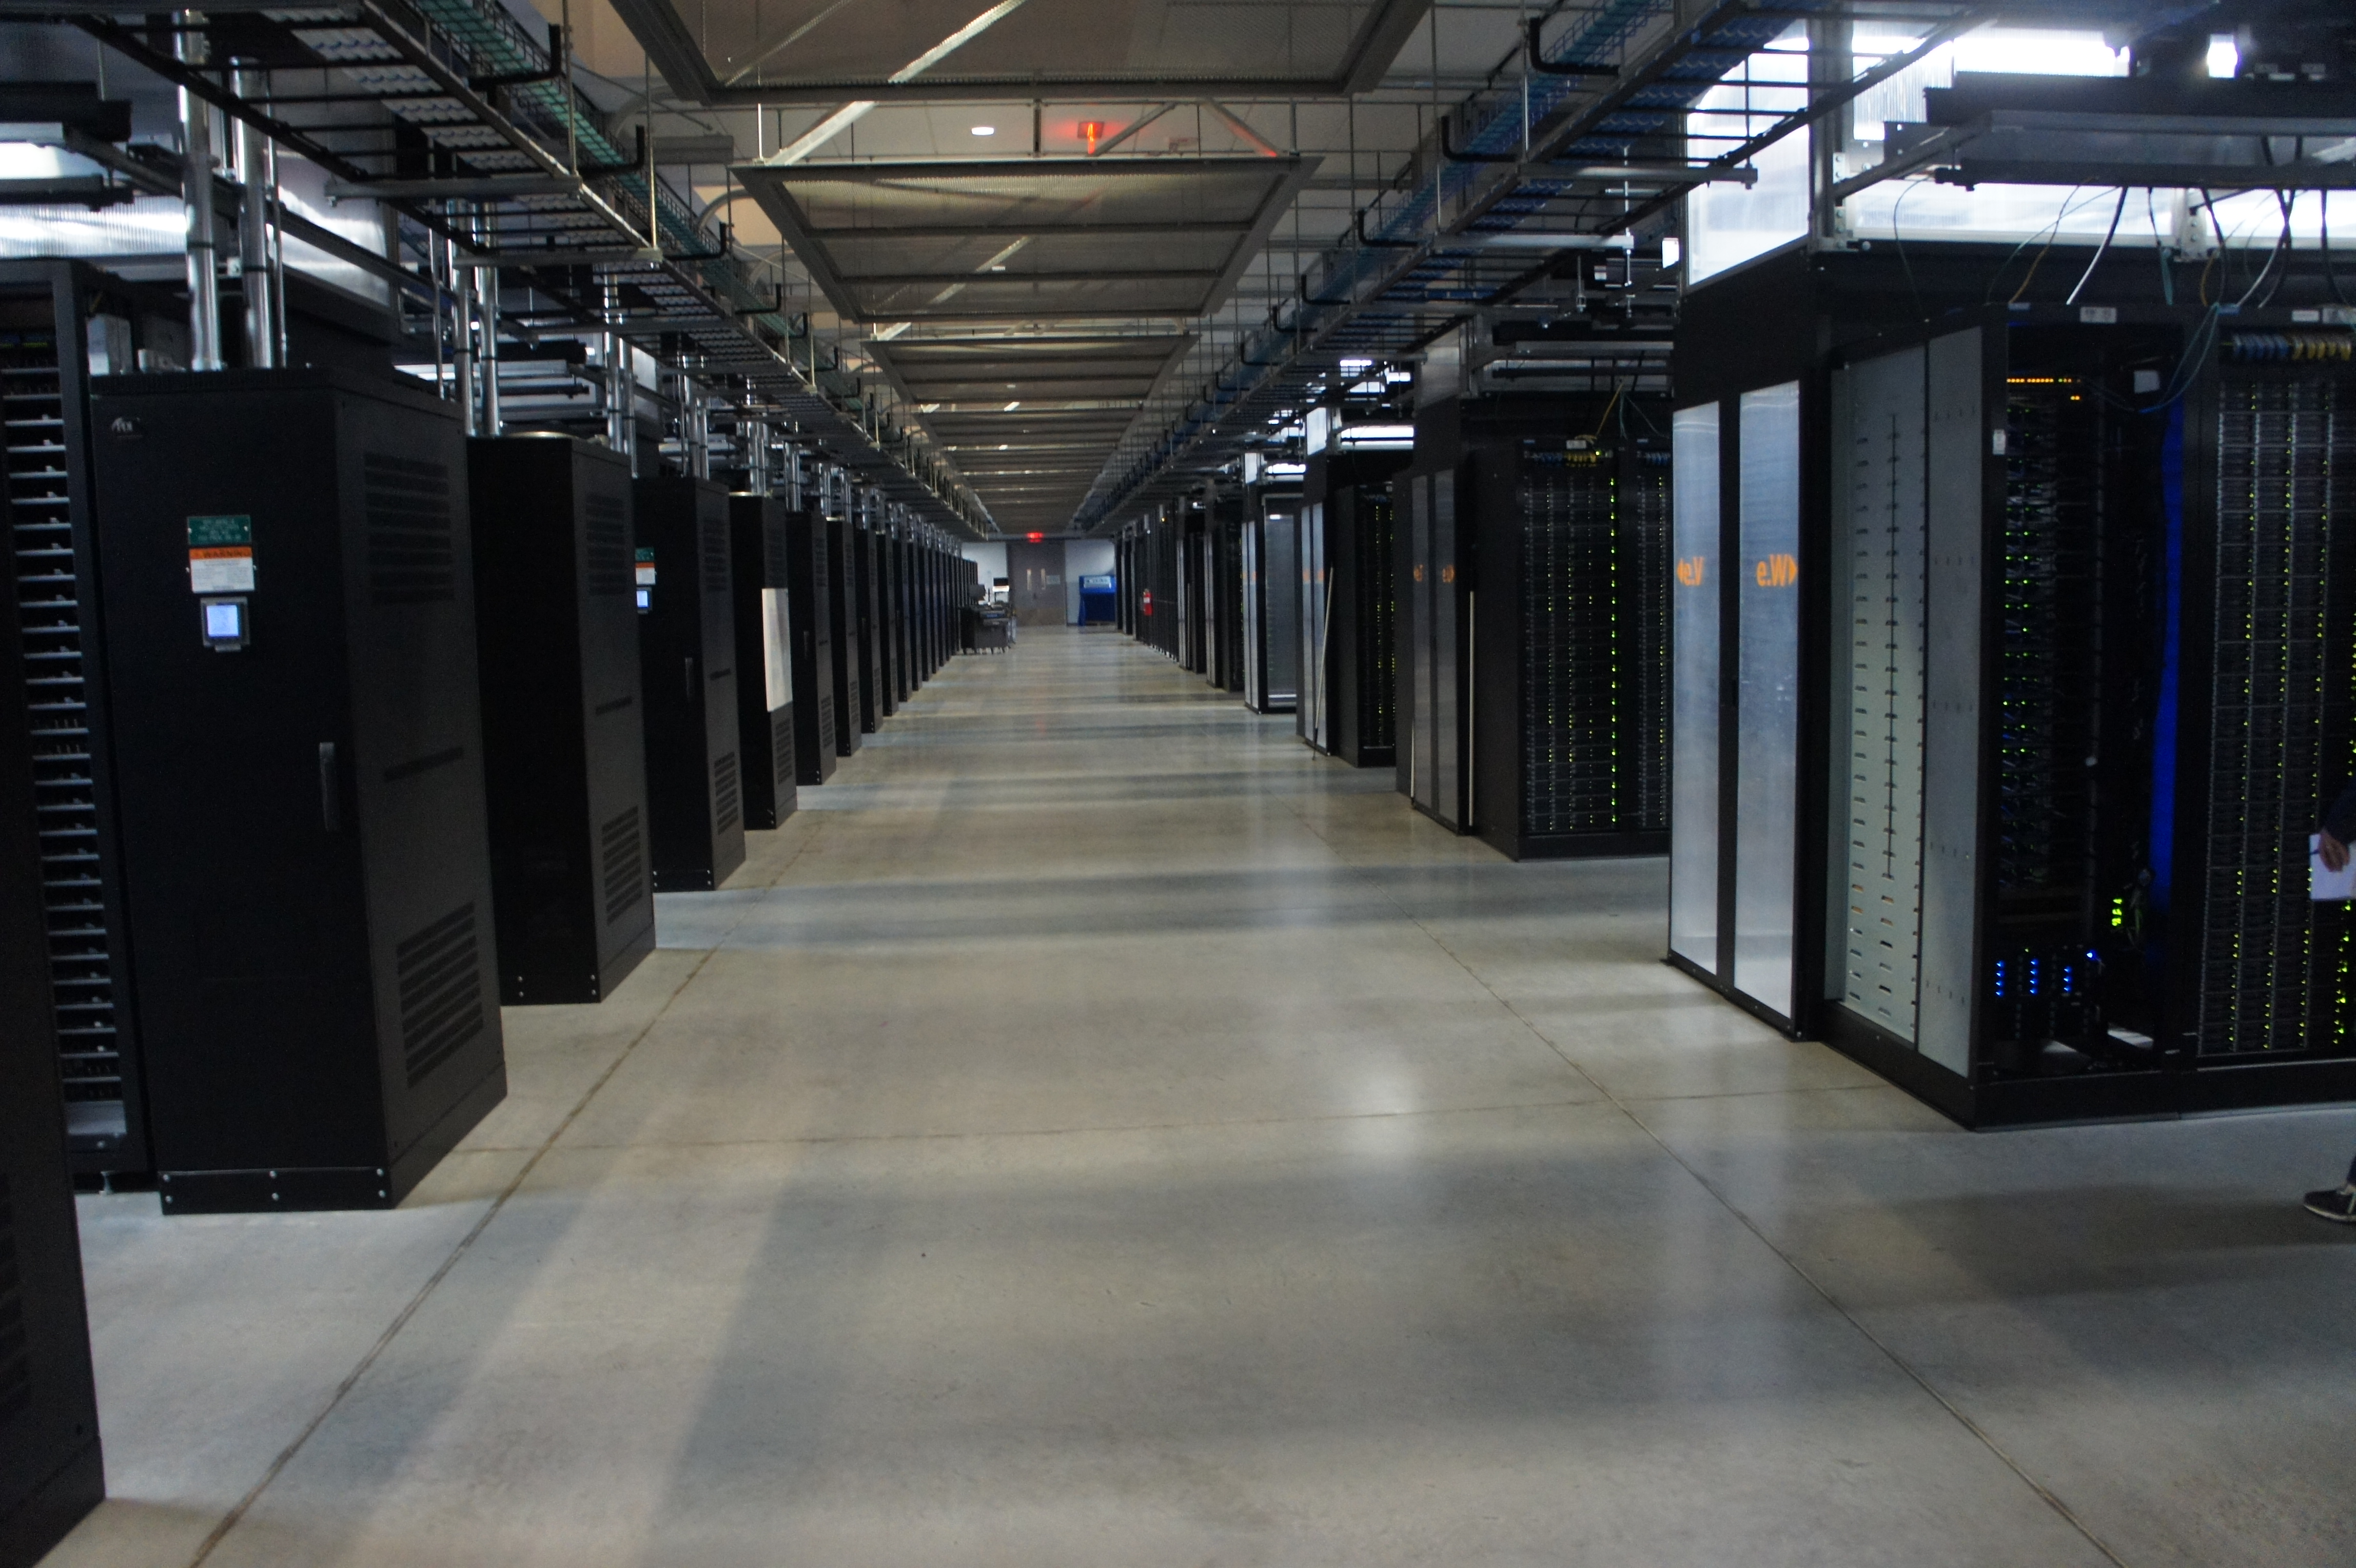 The server rooms at Facebook's data center